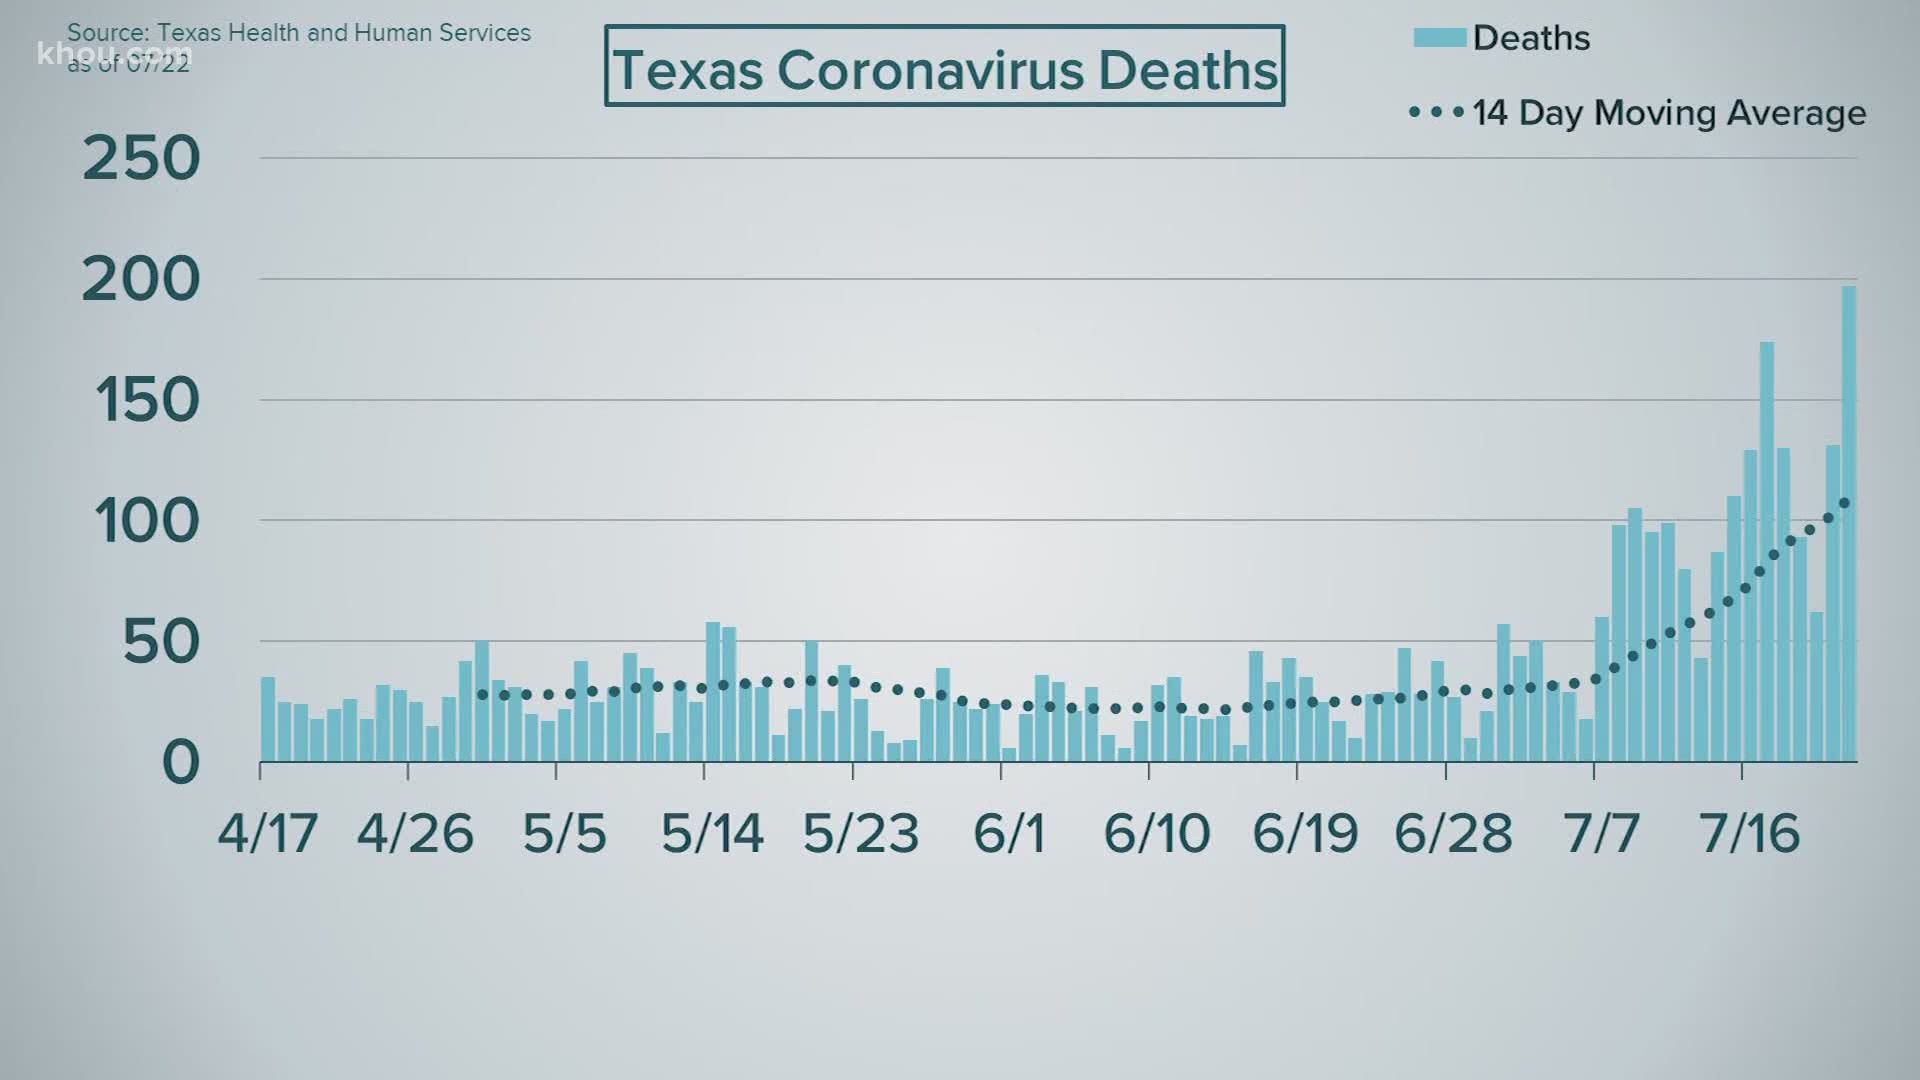 Texas Sets Single Day Record July 22 With 197 Covid 19 Deaths Khou Com